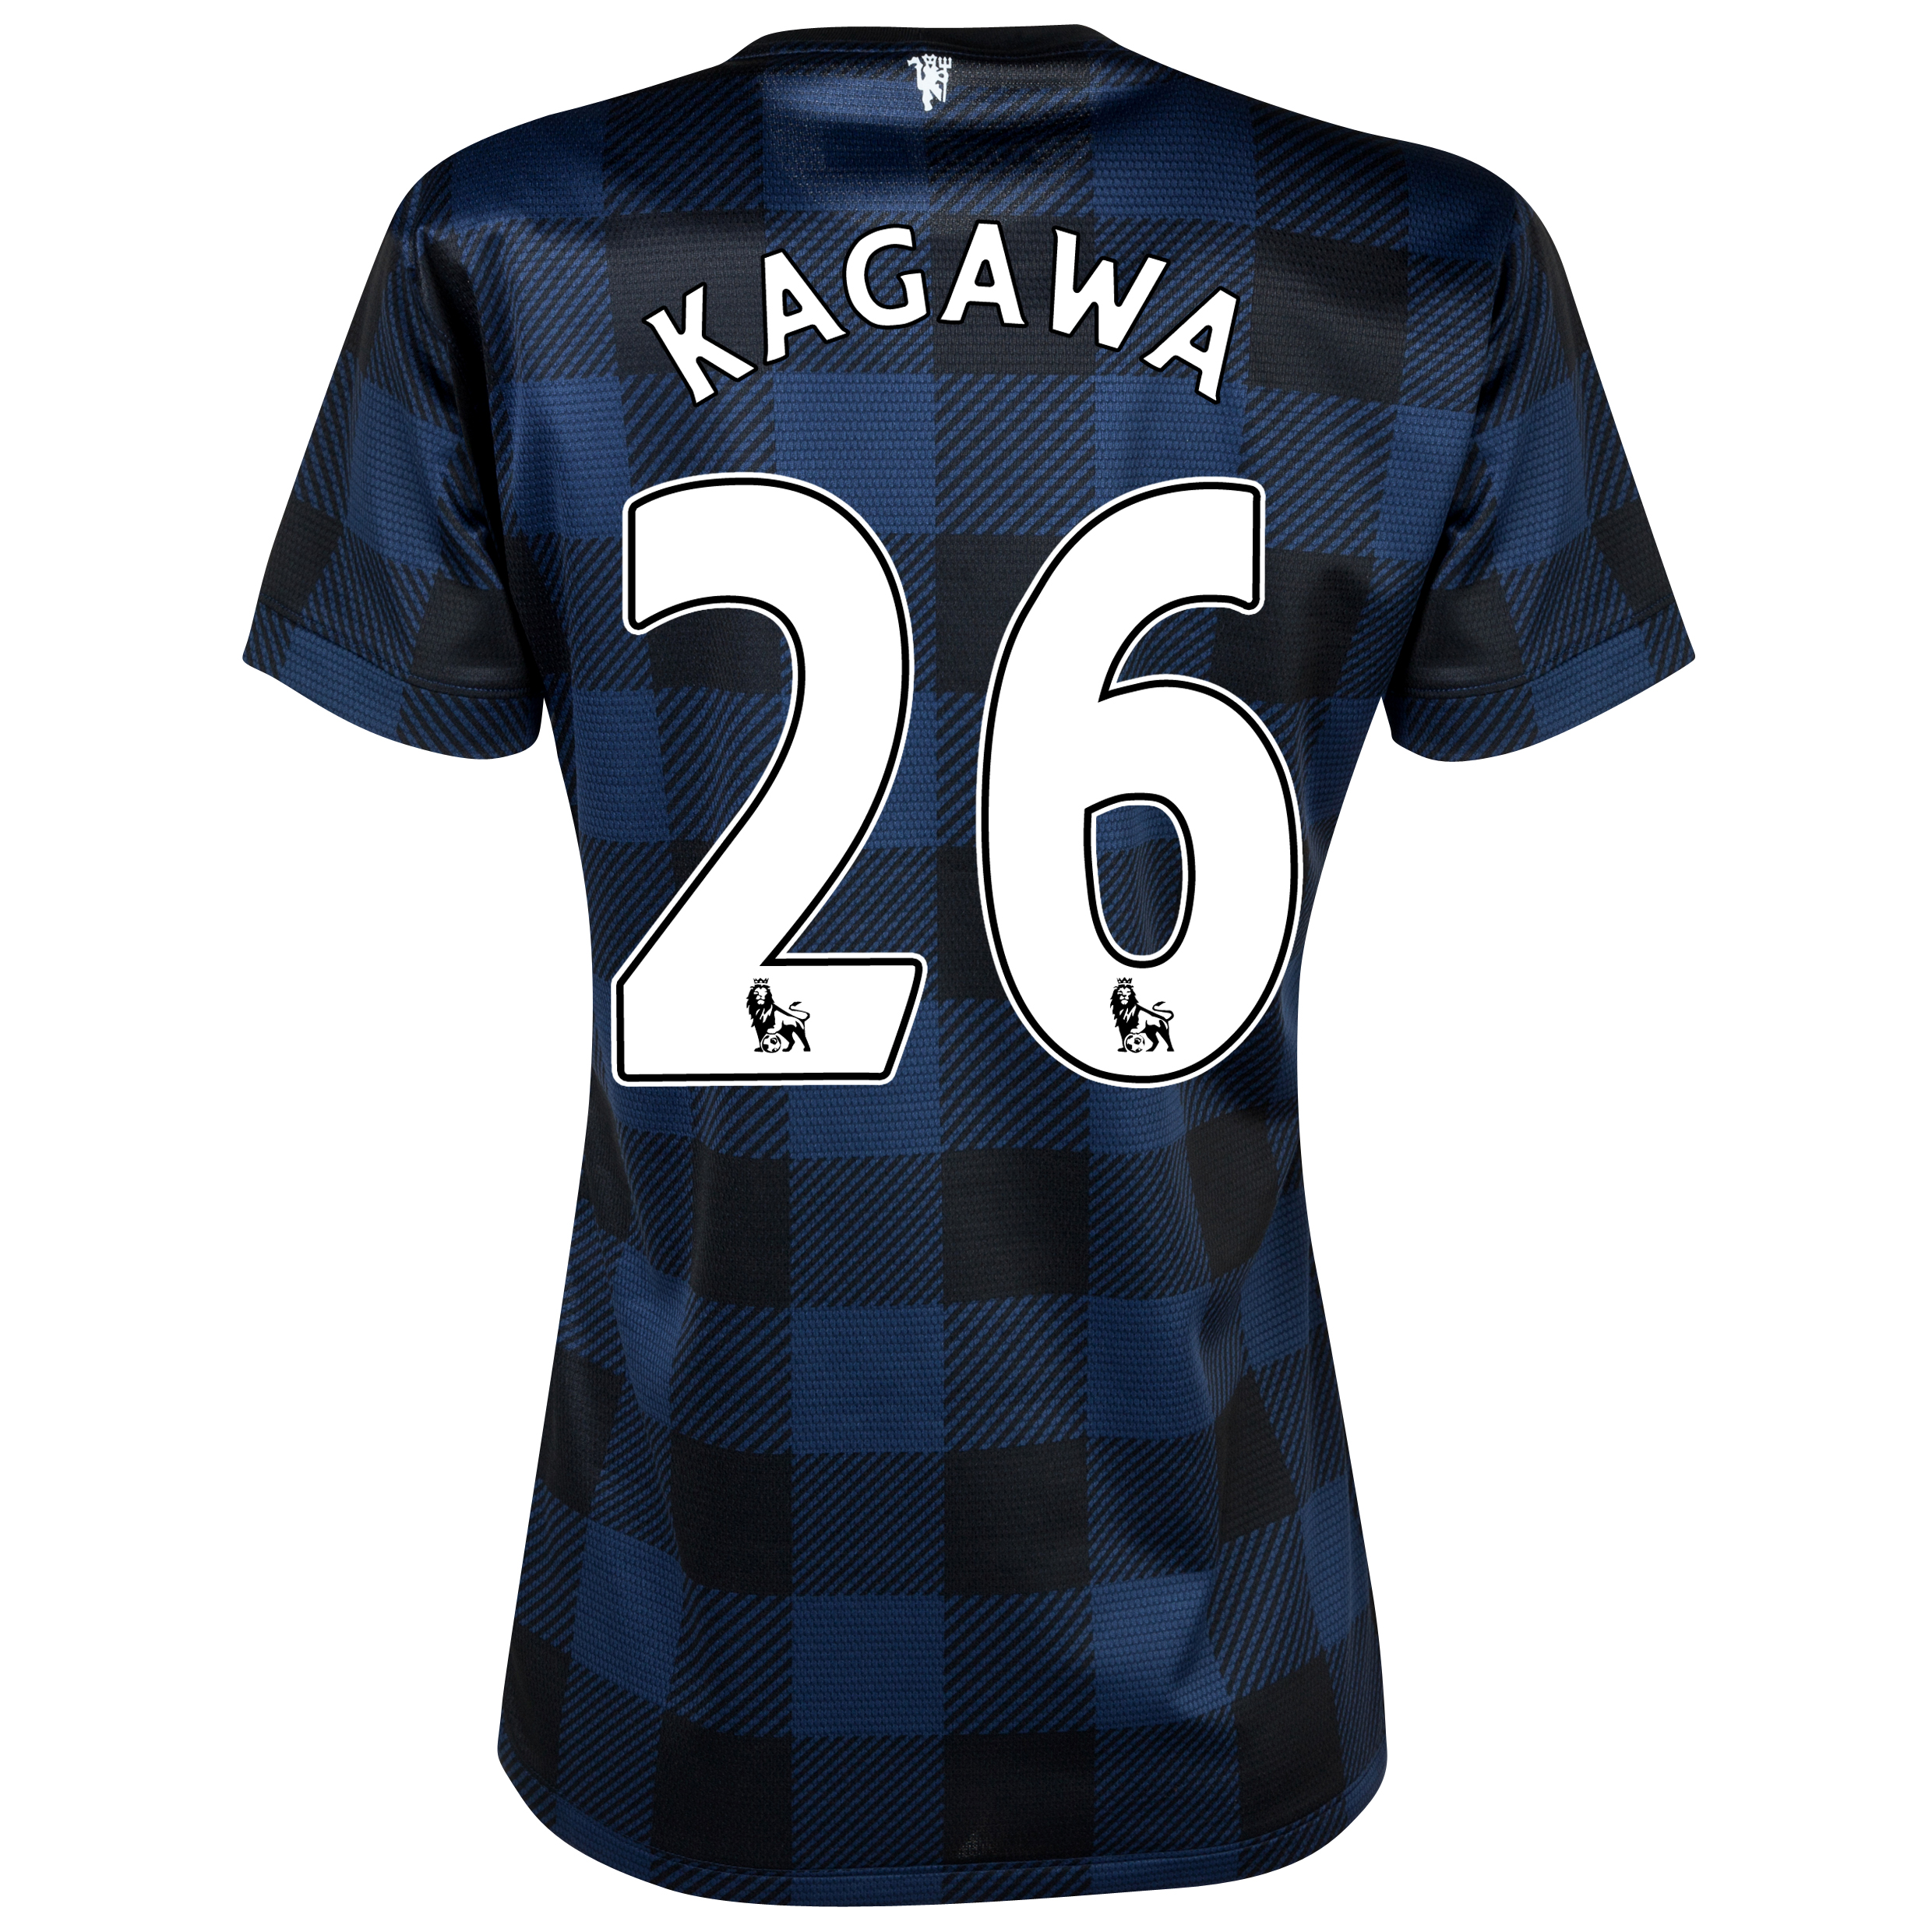 Manchester United Away Shirt 2013/14 - Womens with Kagawa 26 printing